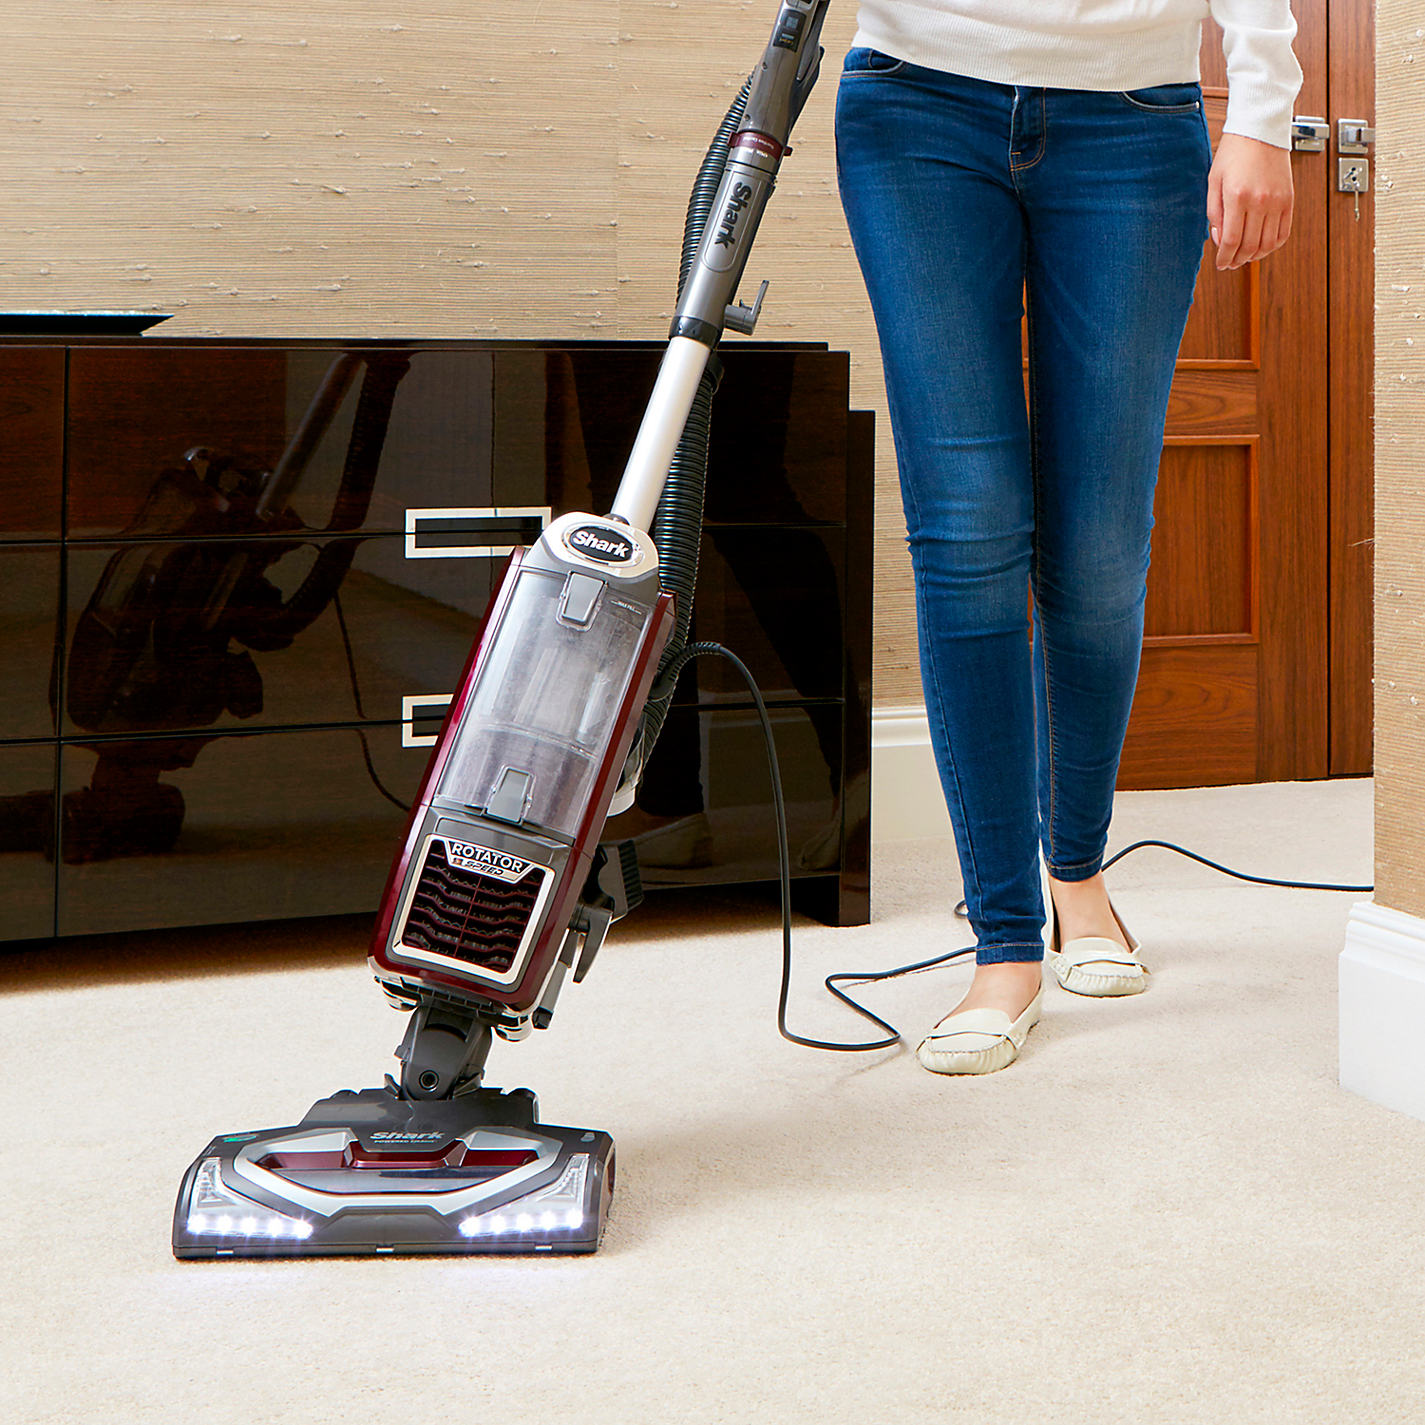 buy shark nv680ukt powered liftaway true pet vacuum cleaner online at - Shark Vacuum Cleaner